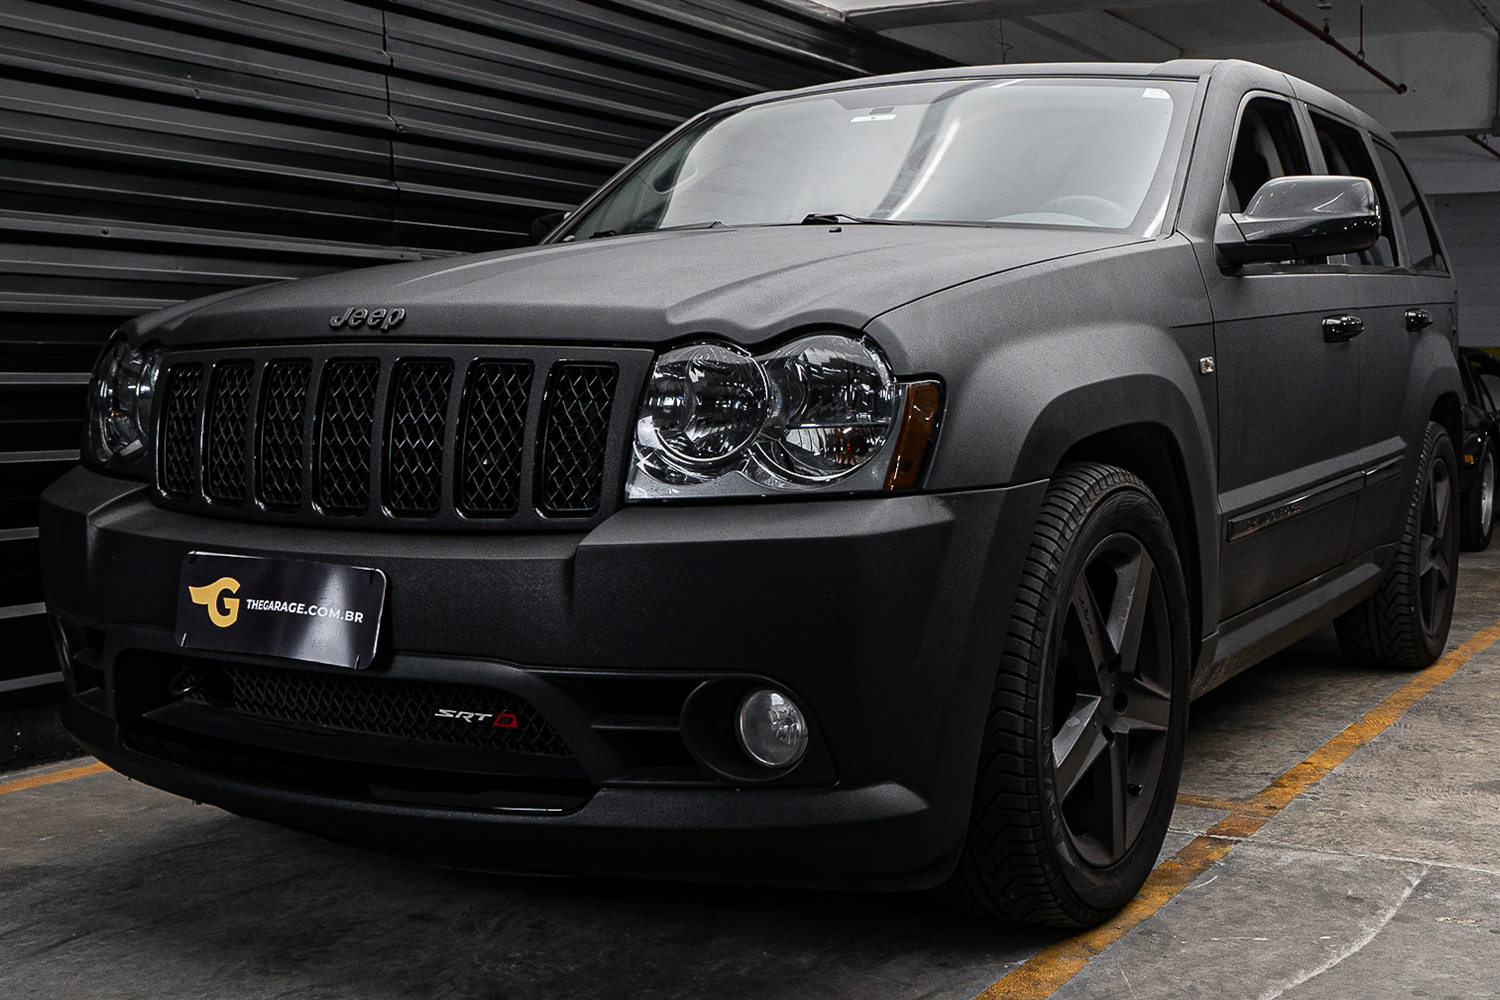 2006 Jeep Grand Cherokee Srt8 The Garage